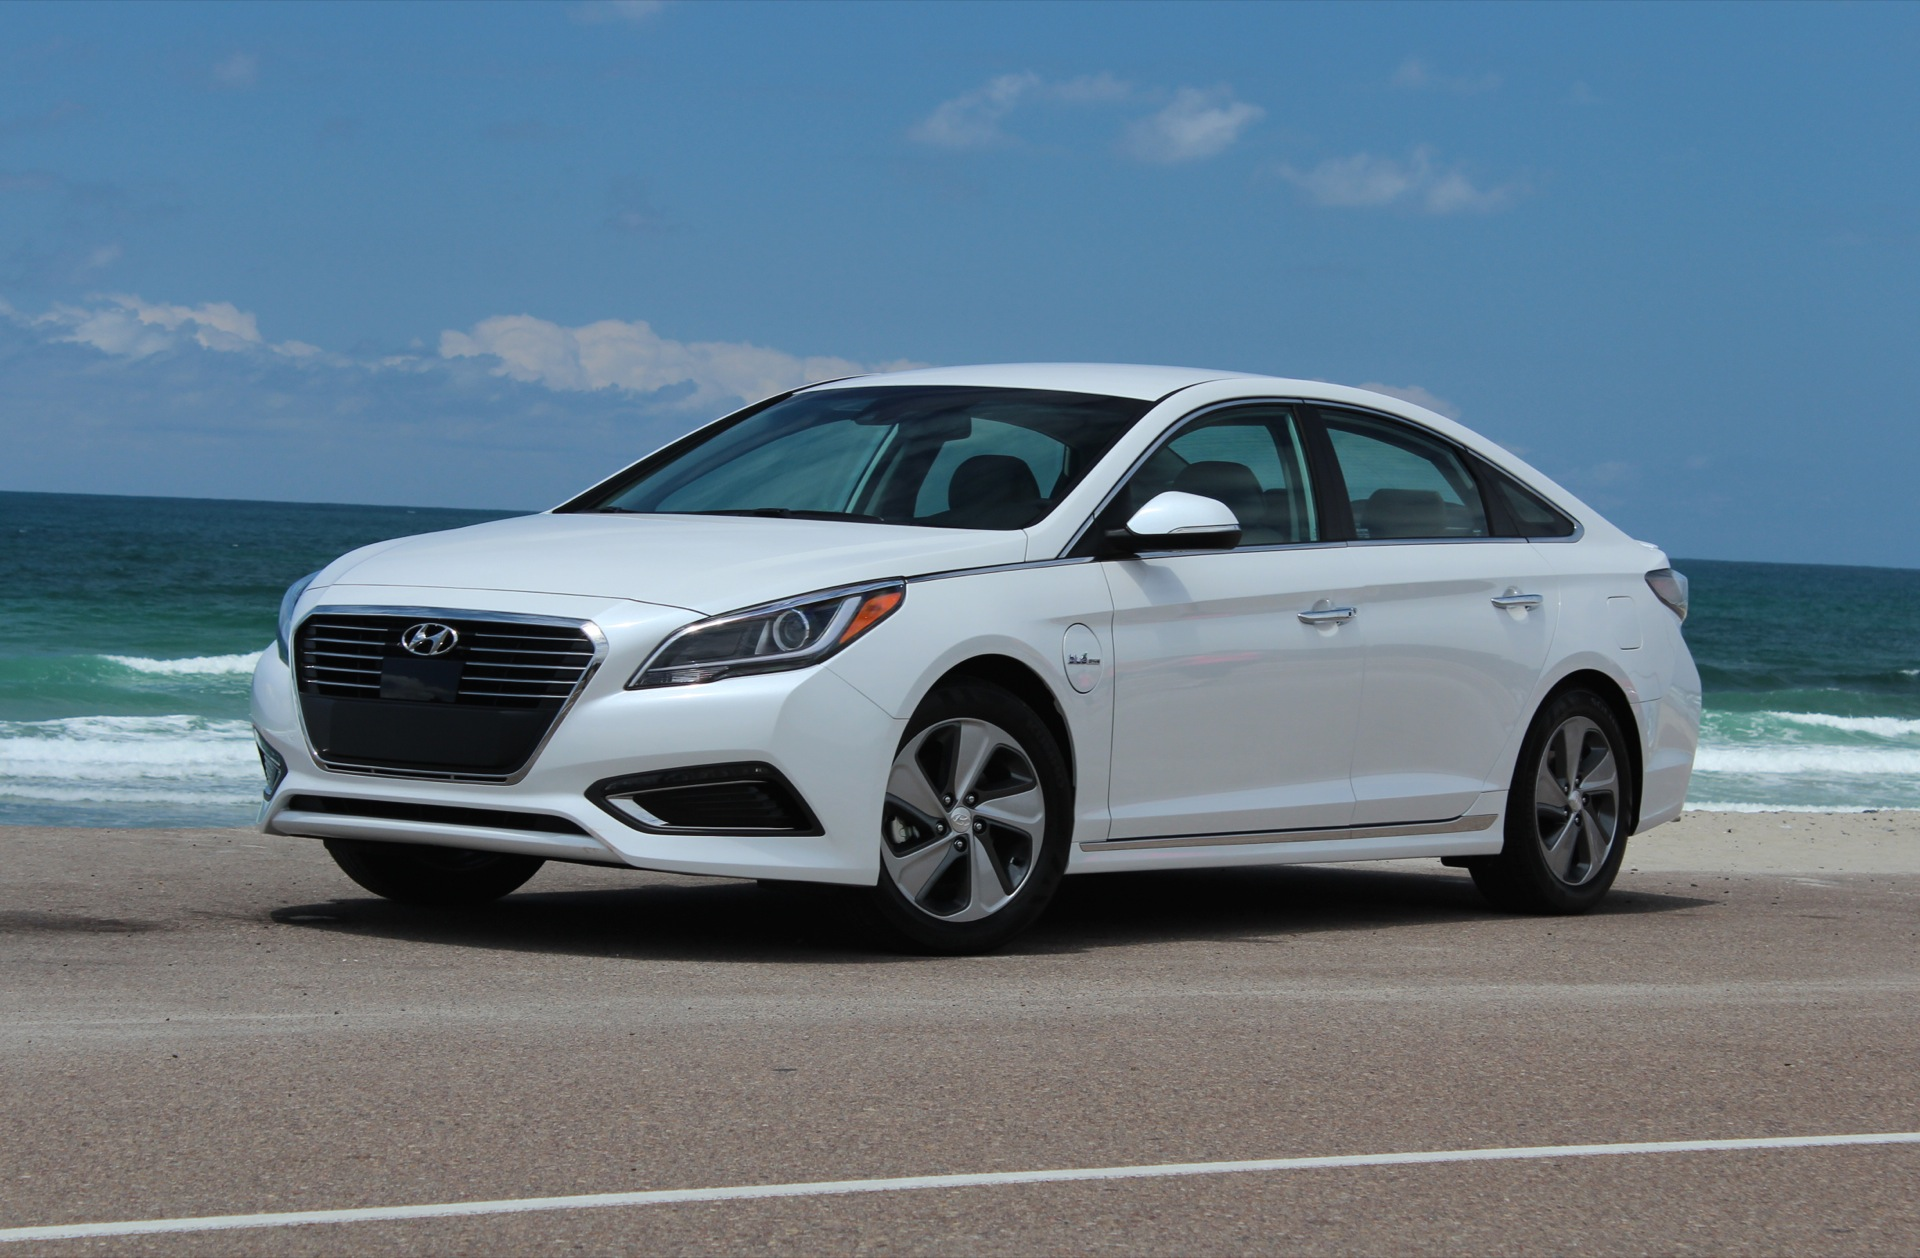 new and used hyundai sonata prices photos reviews specs the car connection. Black Bedroom Furniture Sets. Home Design Ideas